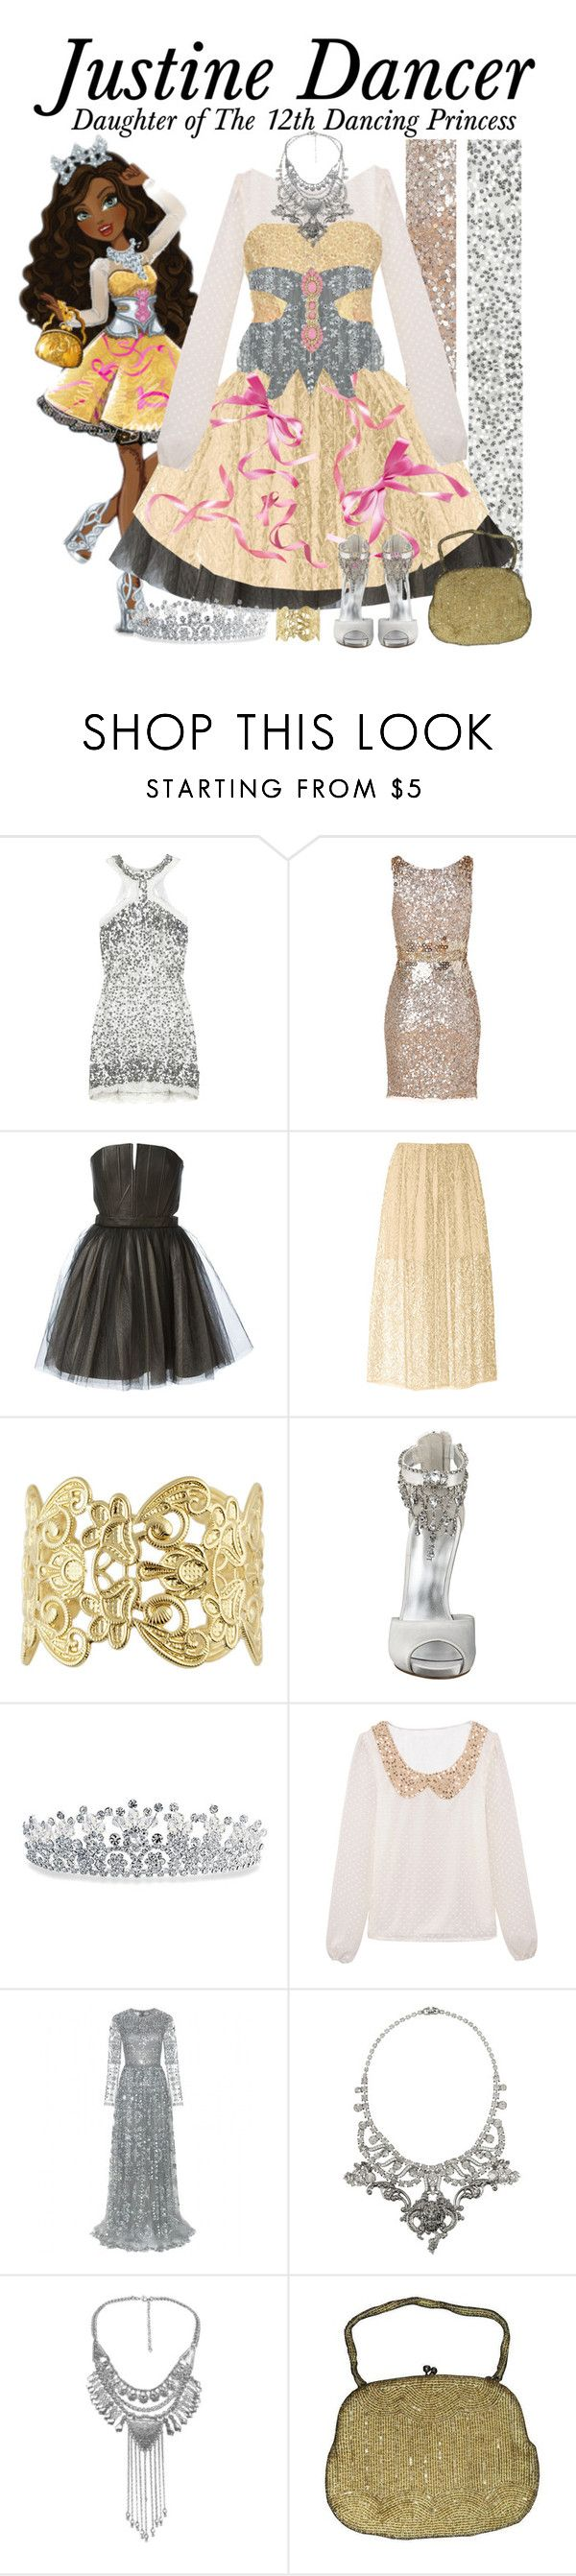 """""""Justine Dancer, Ever After High"""" by supercalifragilistica ❤ liked on Polyvore featuring Rachel Gilbert, Jenny Packham, Alice + Olivia, ADAM, Nine West, Bling Jewelry, Marc Jacobs, Valentino, Tom Binns and Ciner"""